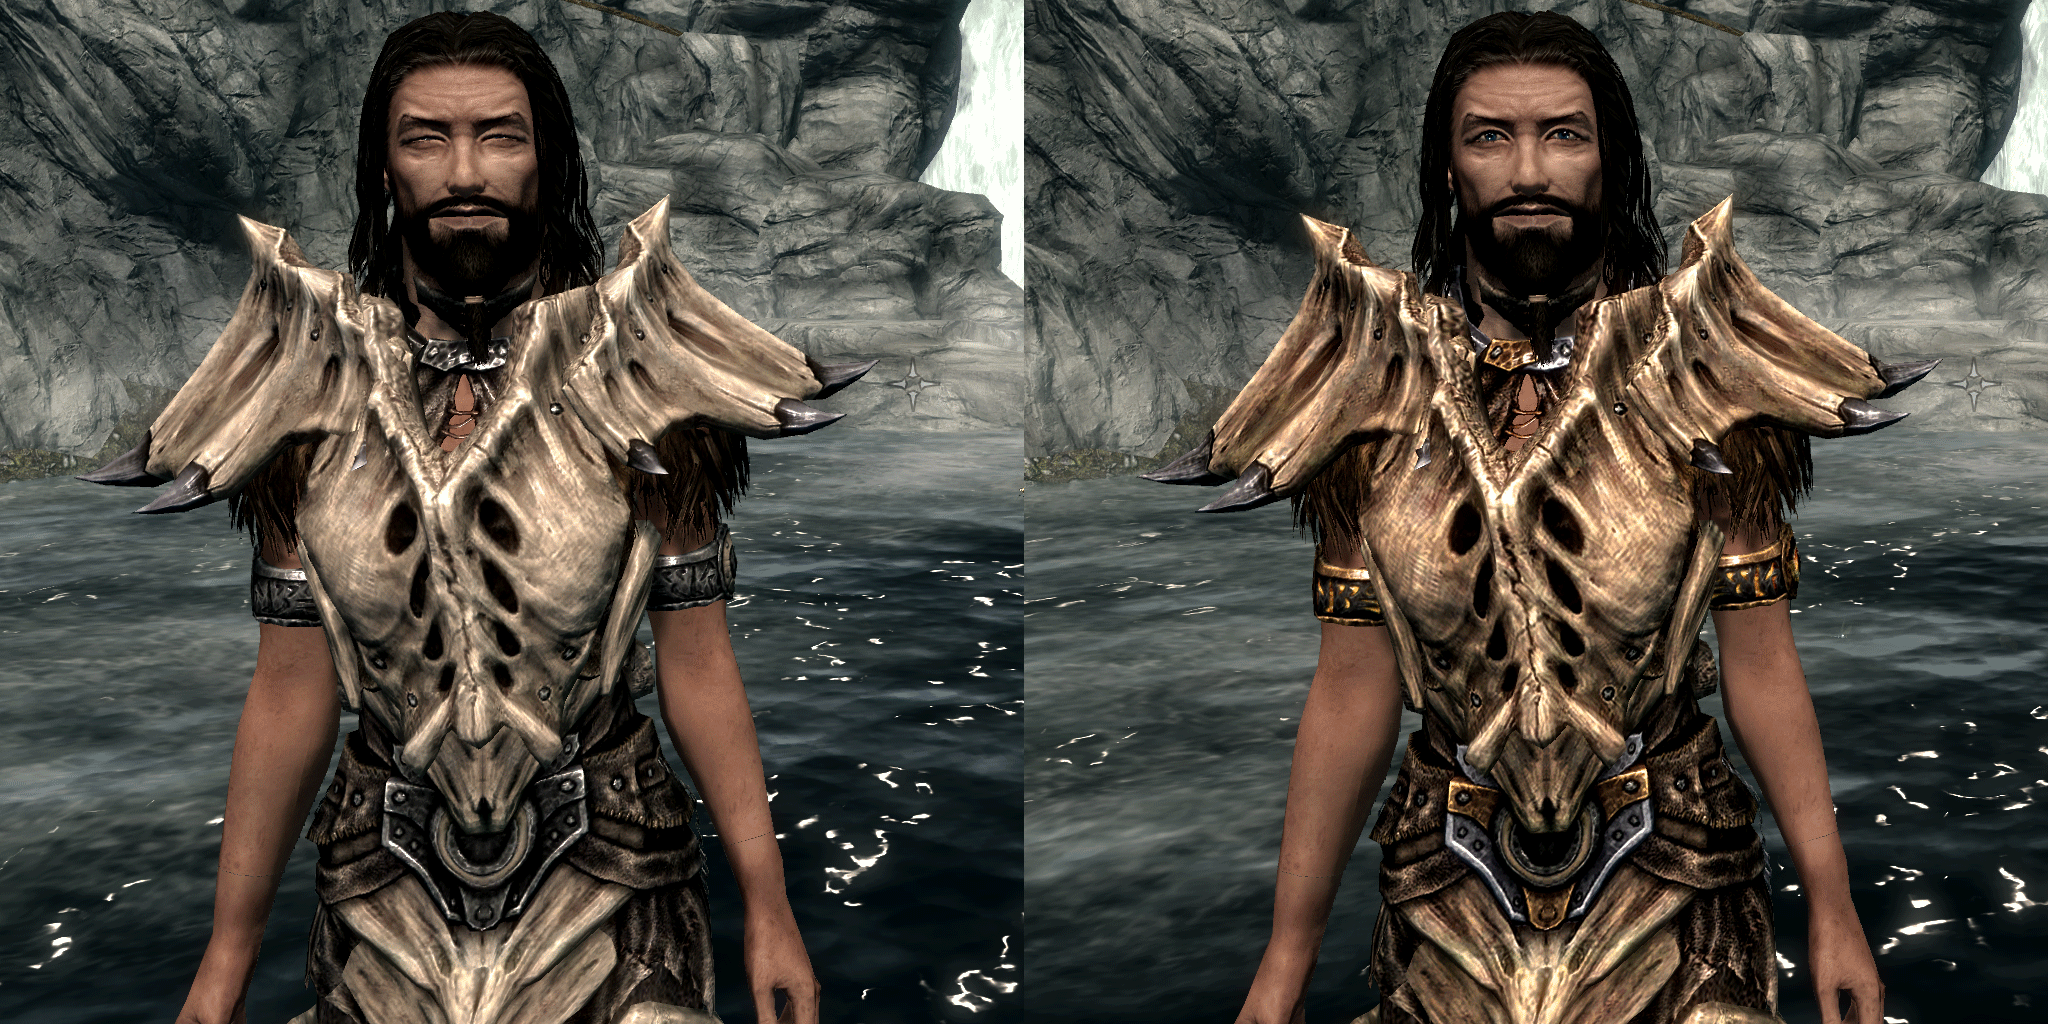 Tri Metal Dragonbone Armor Set At Skyrim Nexus Mods And Community And is not affiliated with the game publisher. tri metal dragonbone armor set at